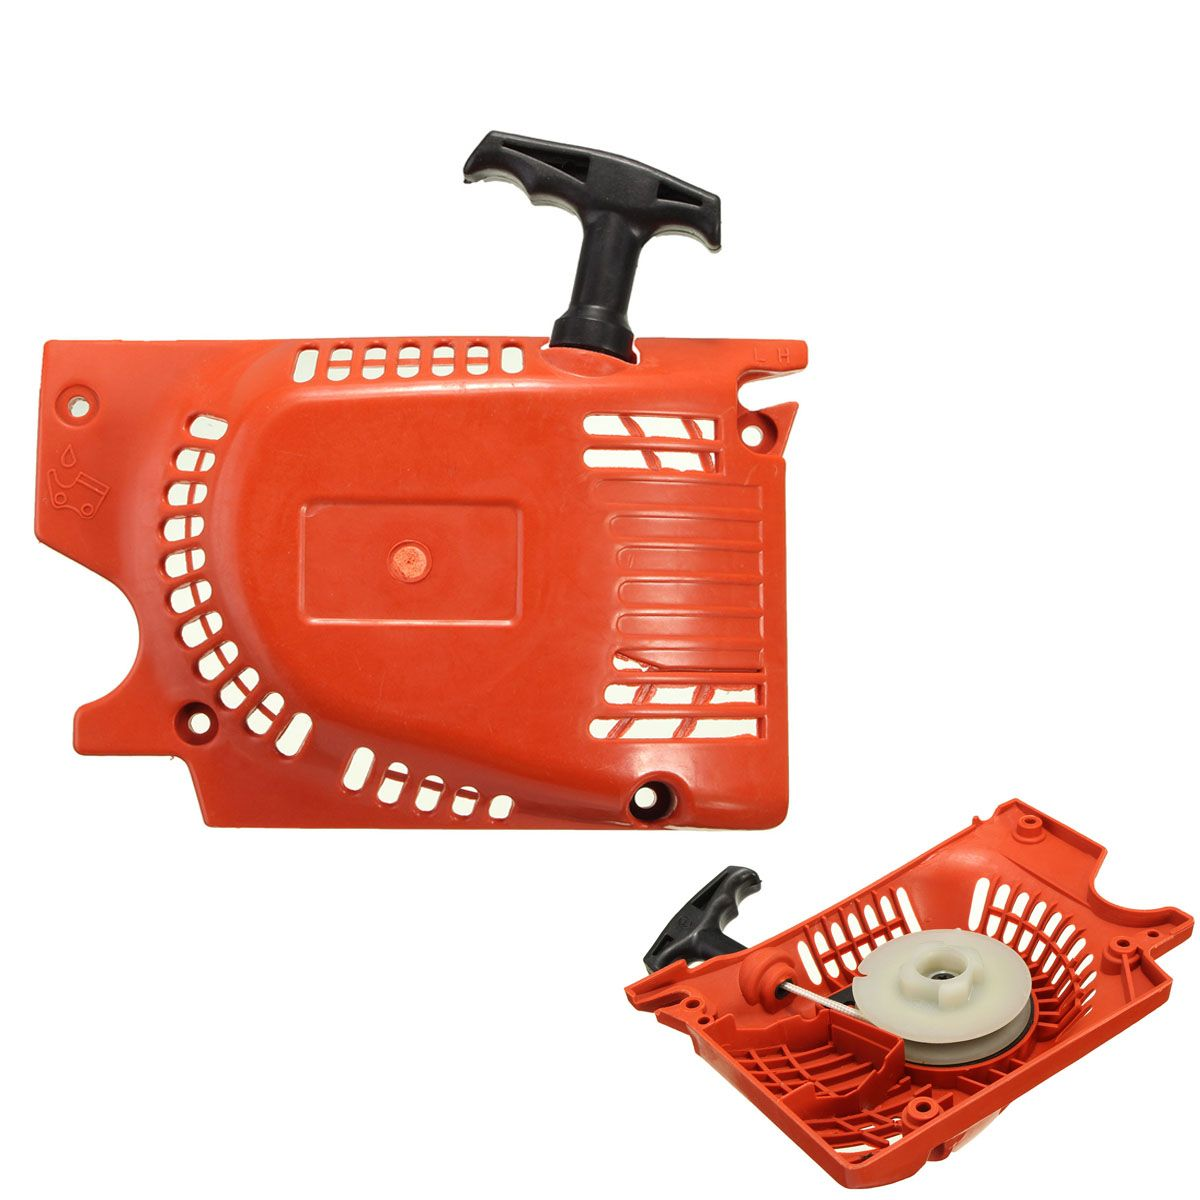 New Recoil Pull Start Starter For Chinese Chainsaw 4500 5200 5800 45cc 52cc 58cc